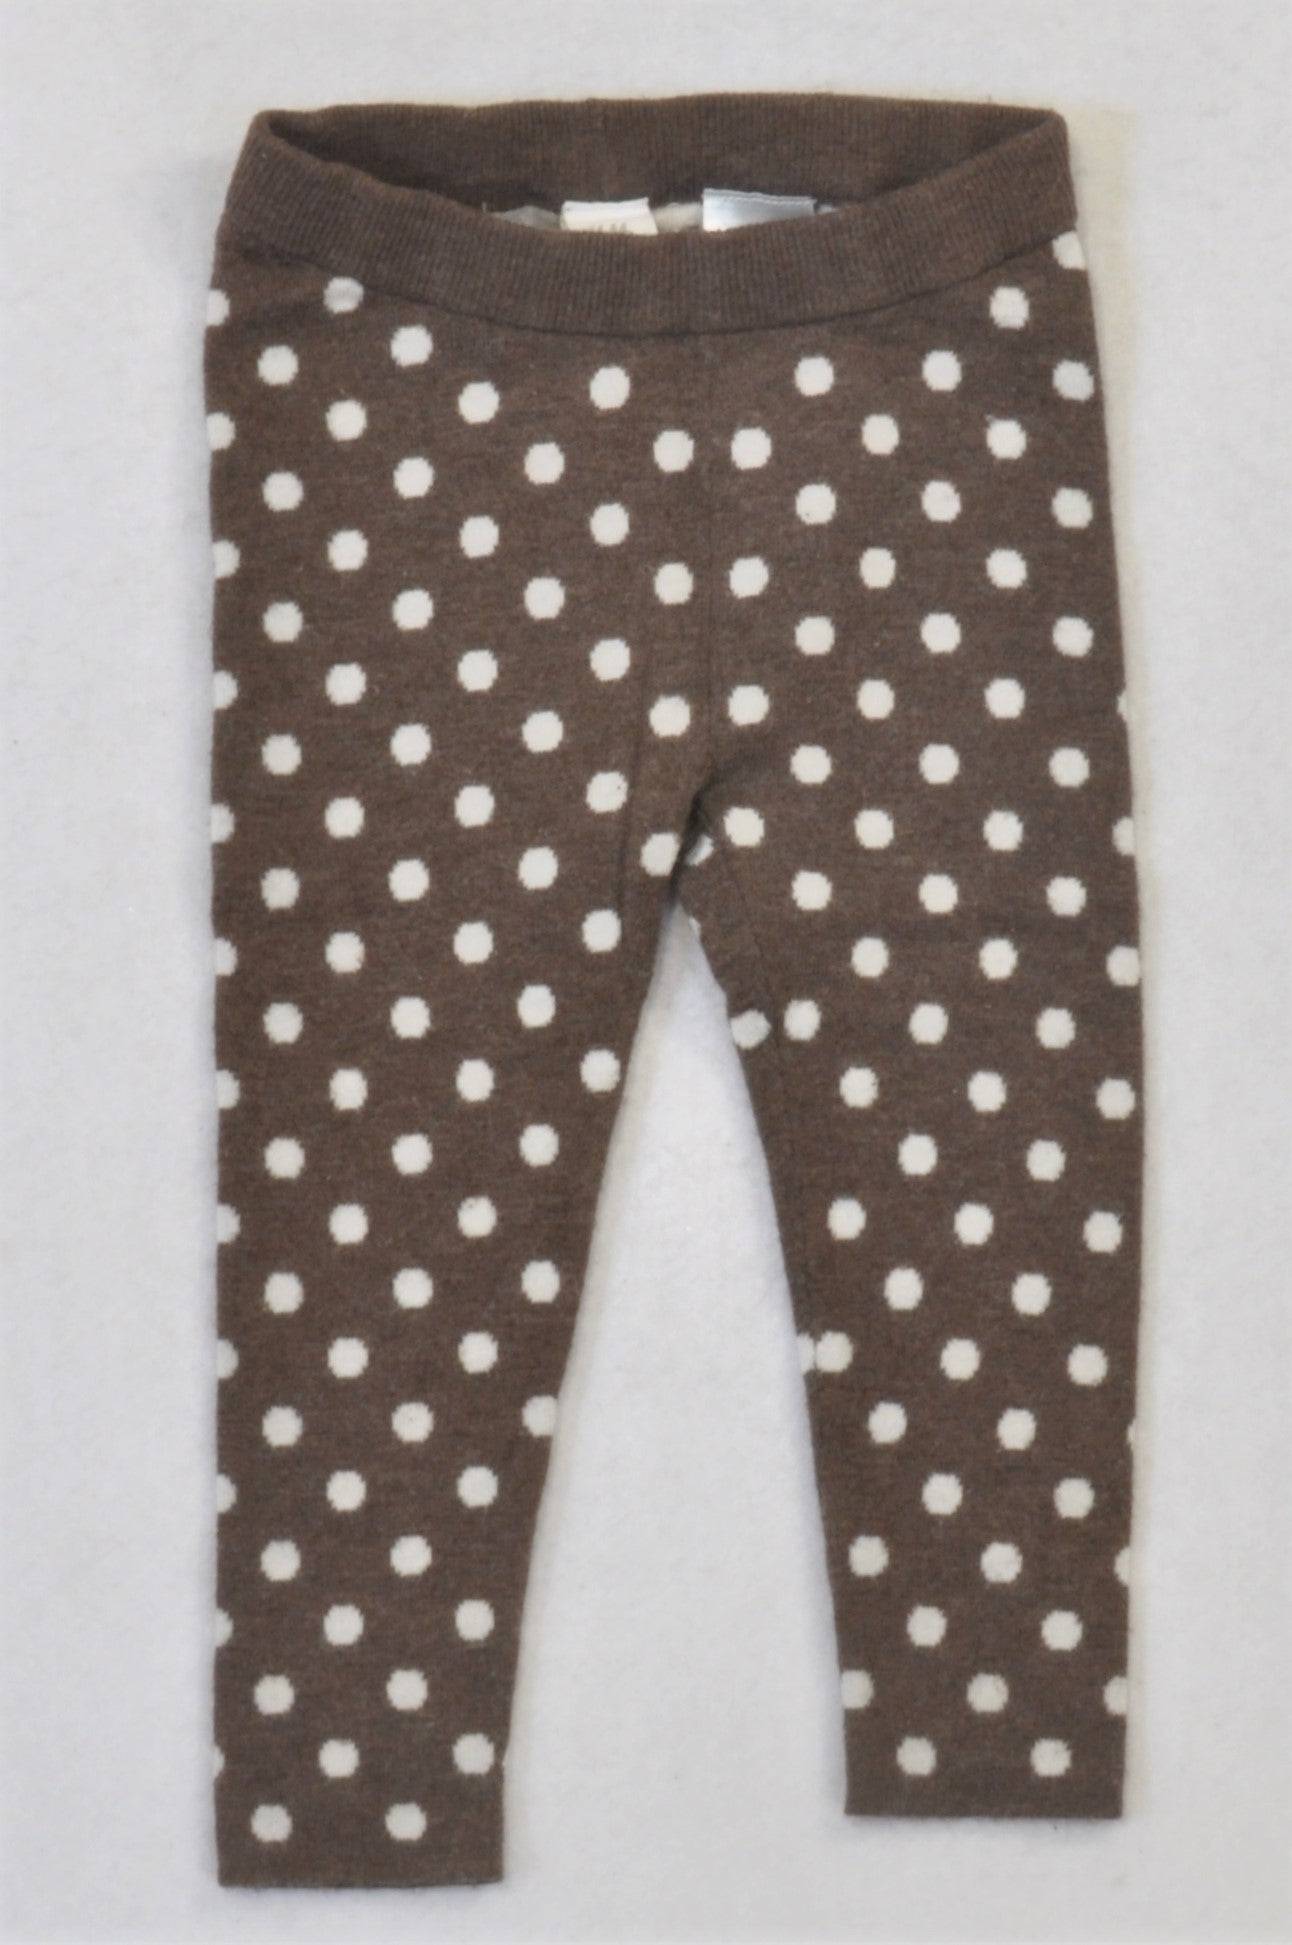 H&M Brown Dotty Knit Stockings Girls 12-18 months